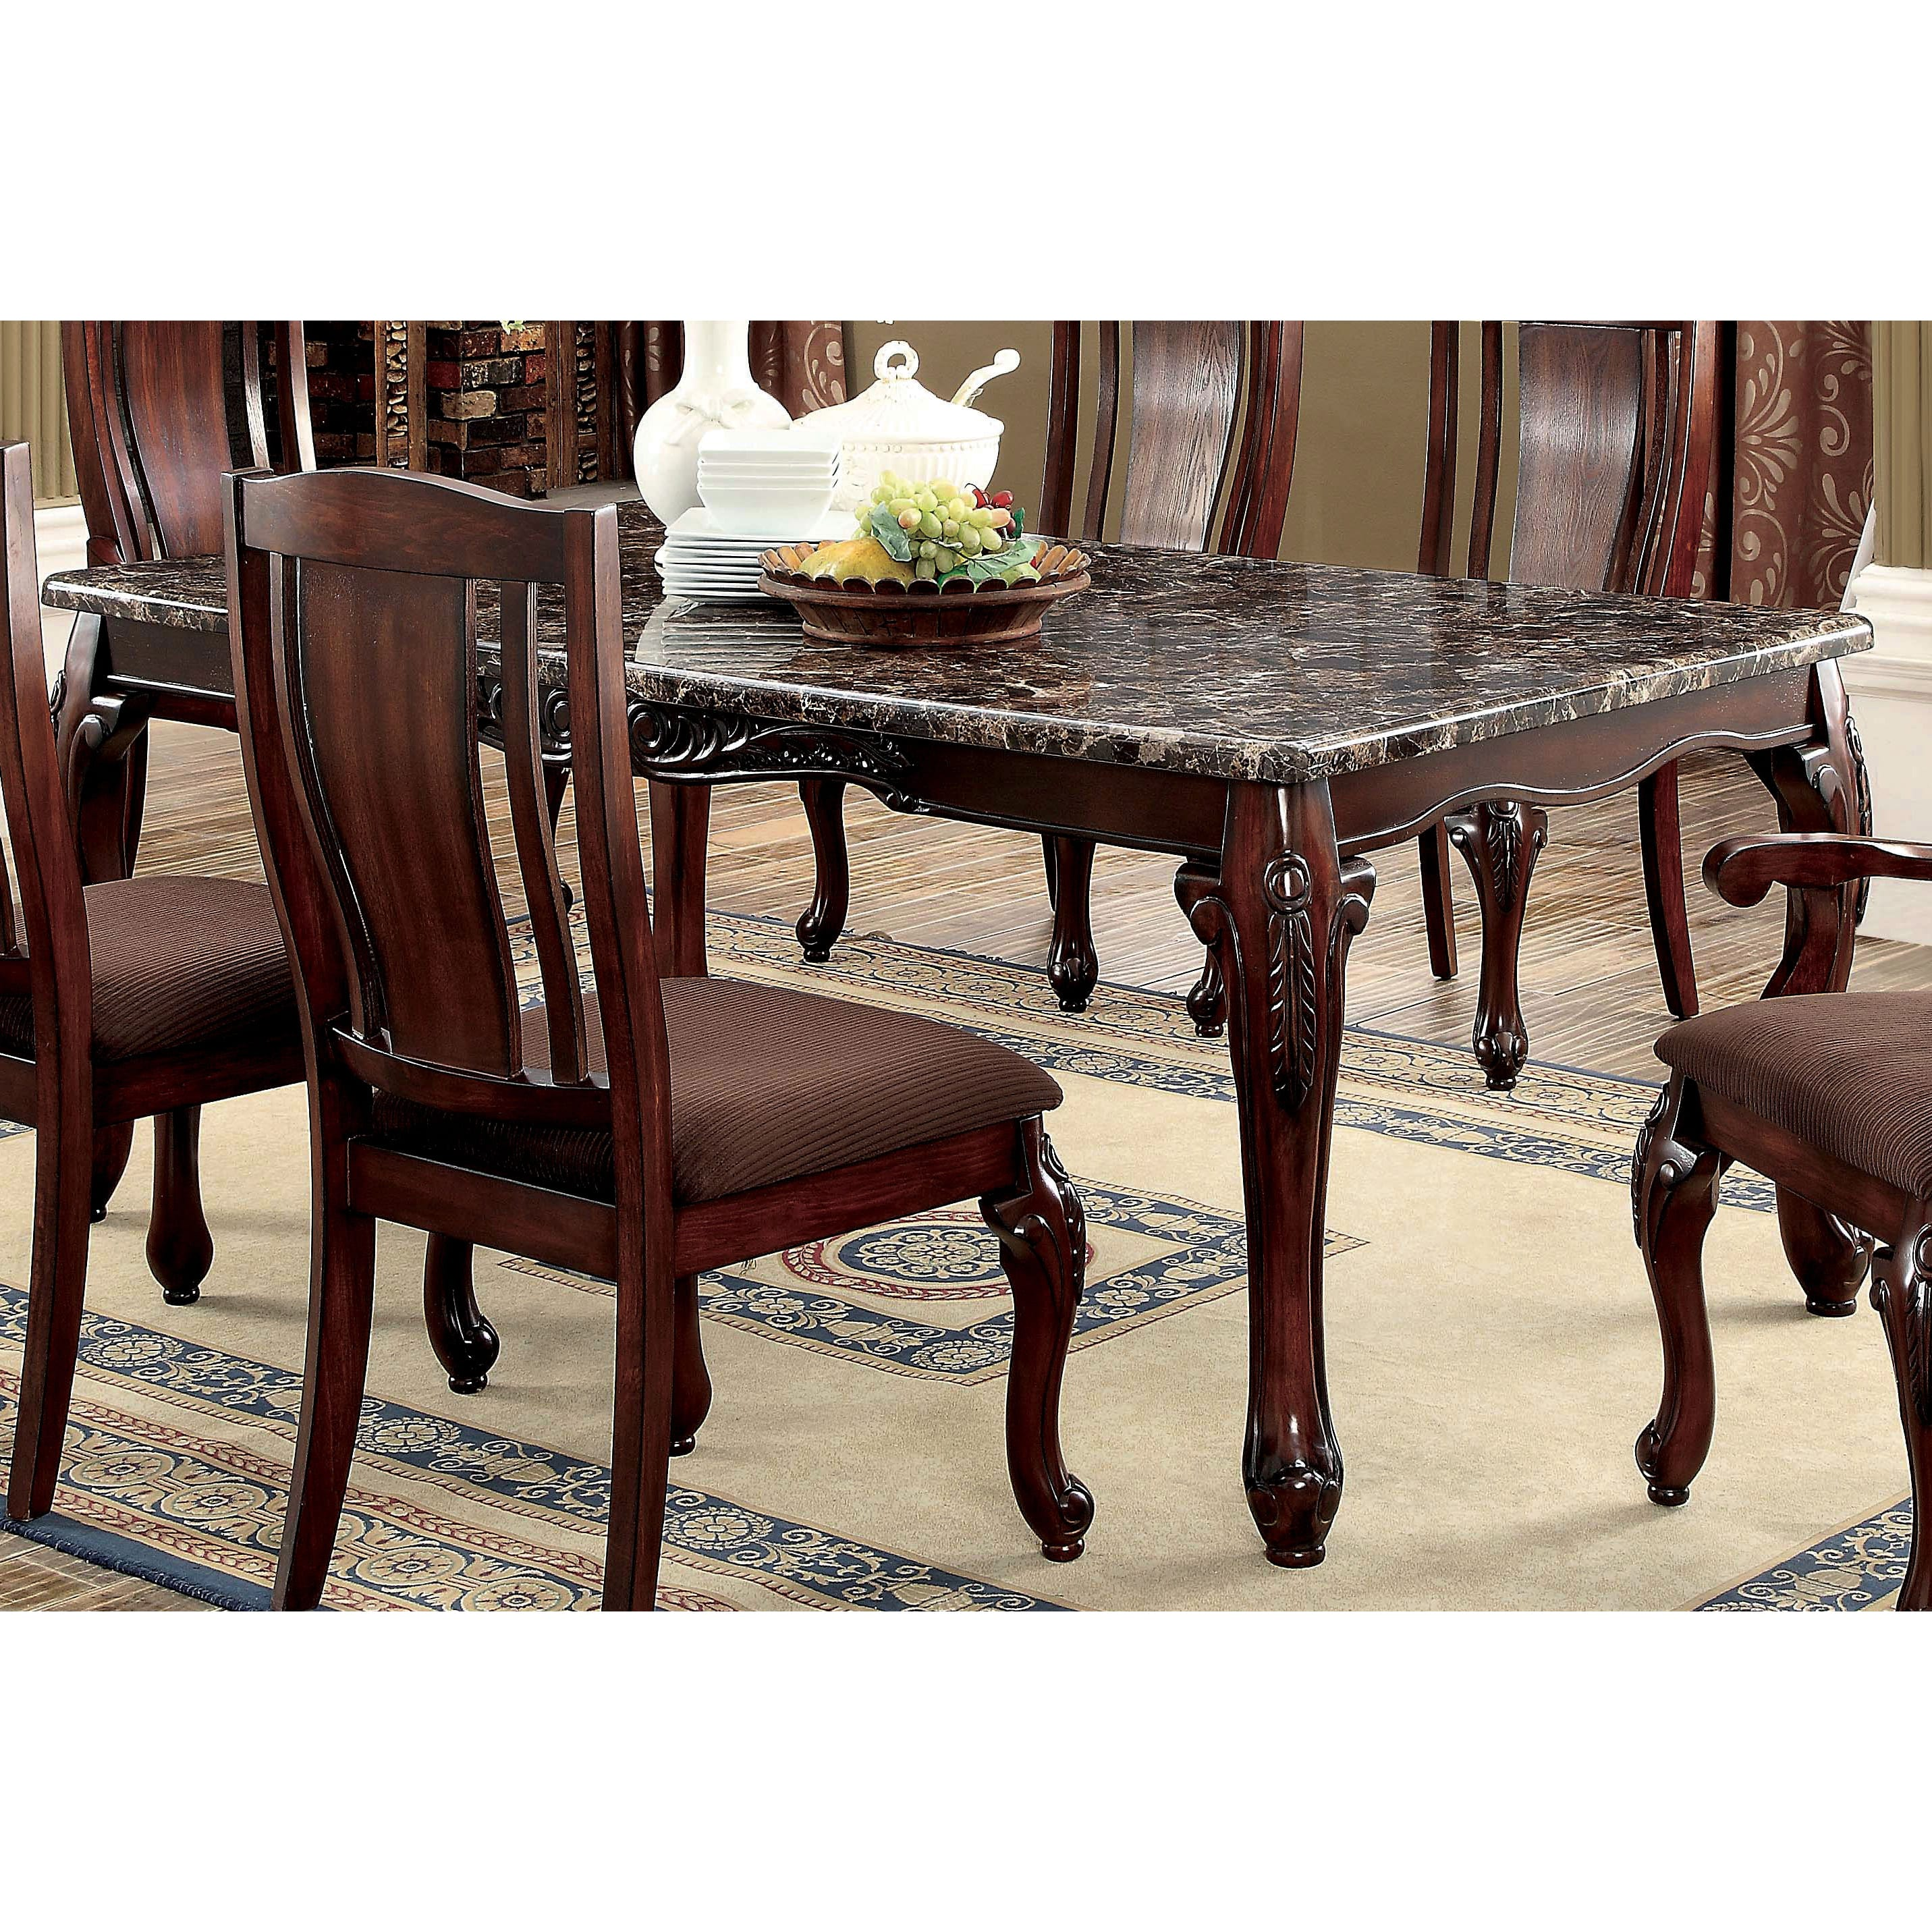 Furniture Of America Hannel Traditional Floral Carved Faux Marble Brown  Cherry Dining Table   Cherry Brown